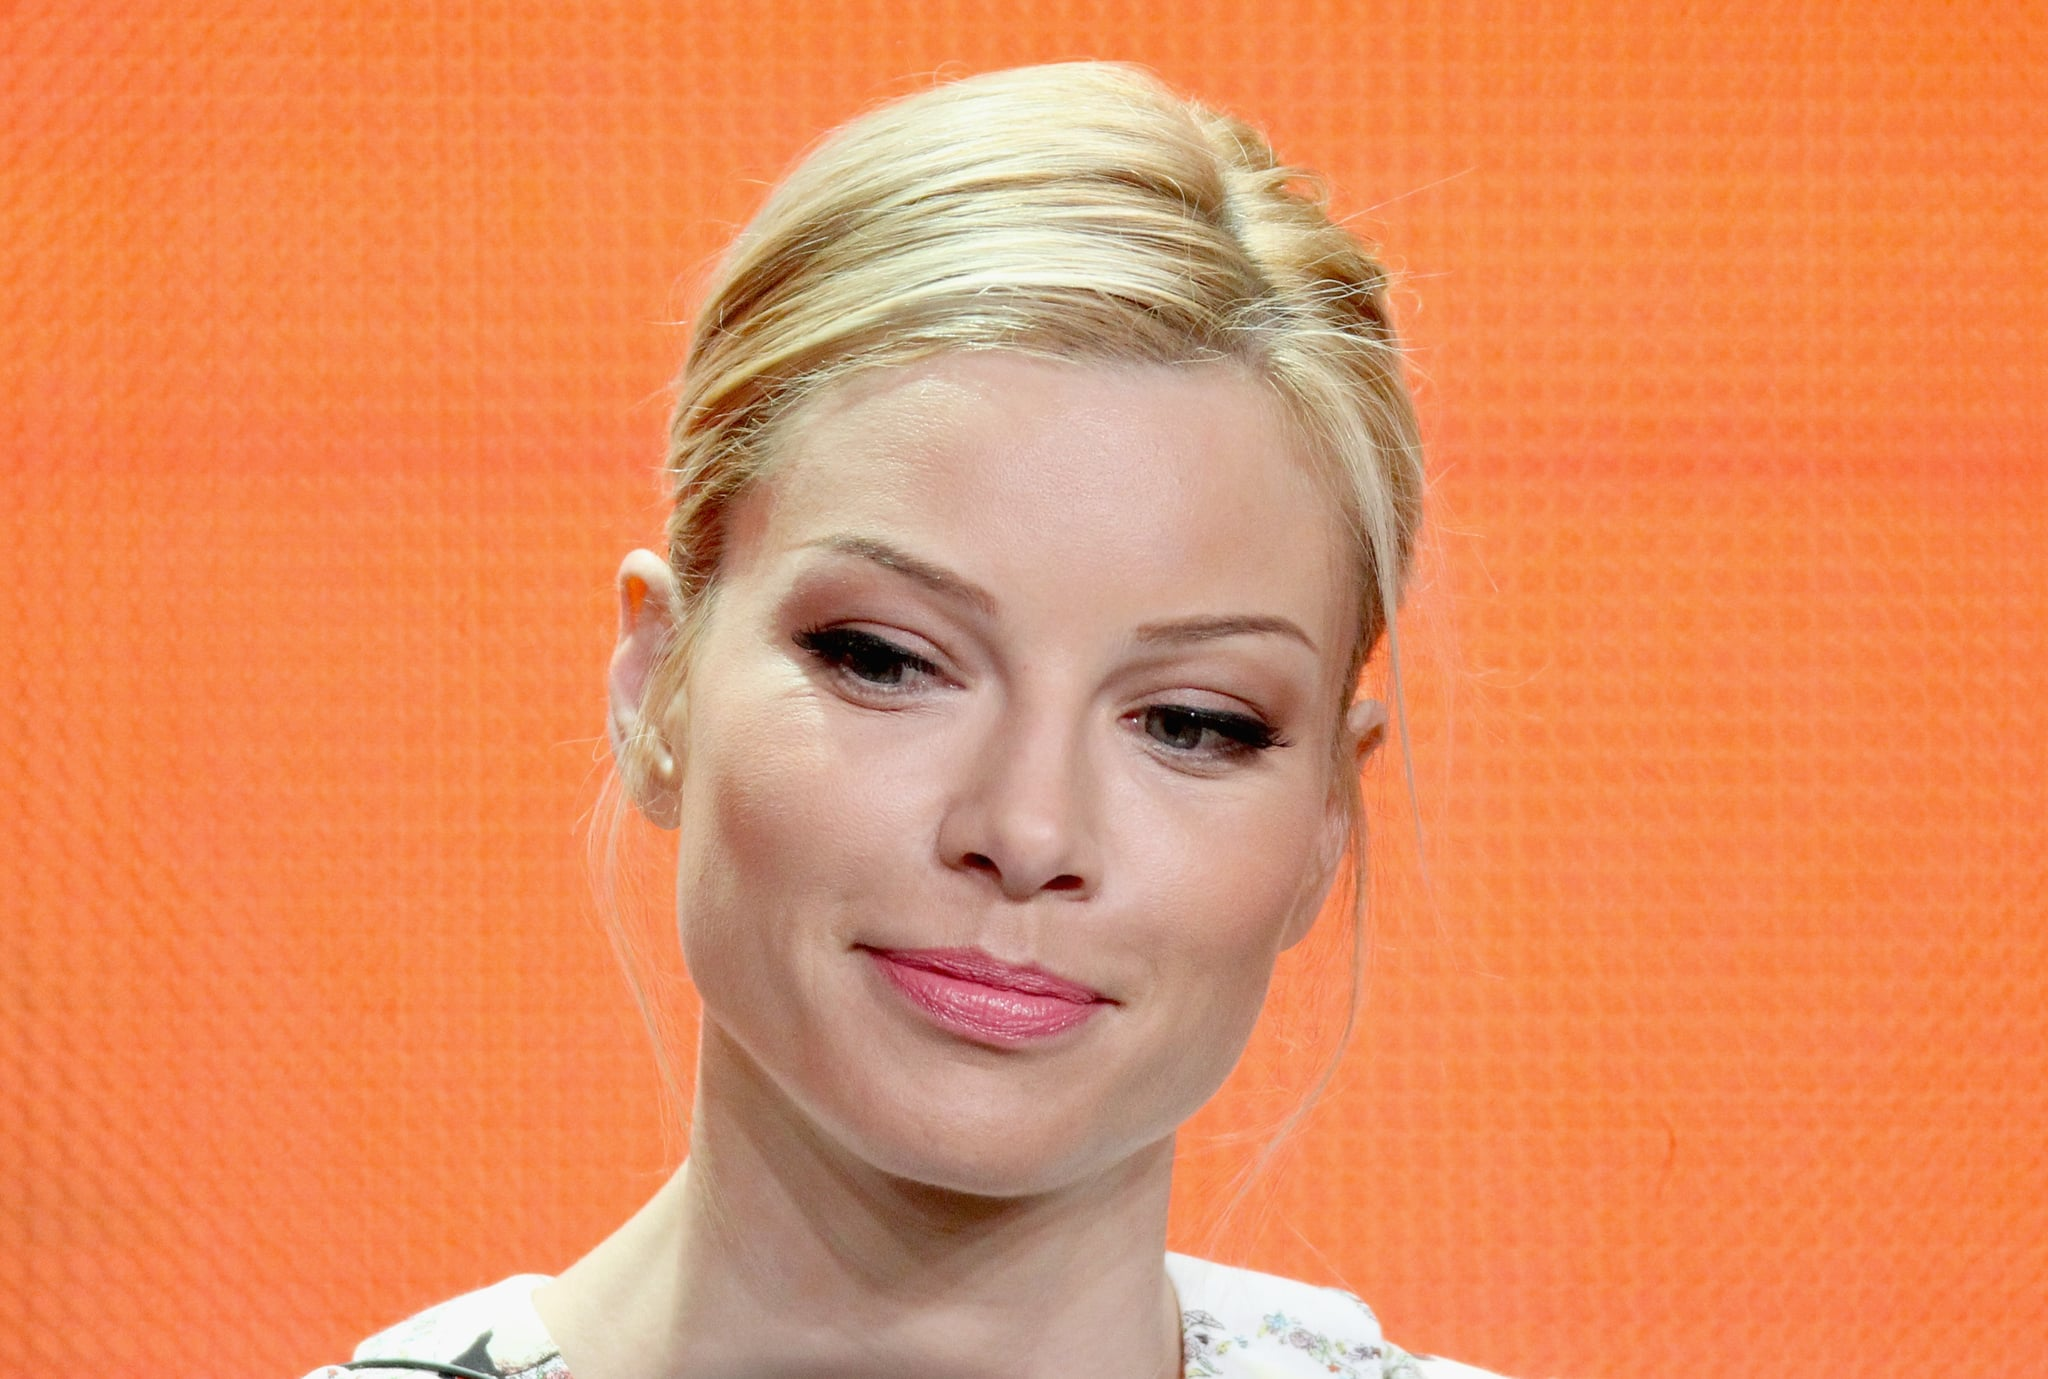 Lauren German plays Leslie Shay in Chicago Fire.